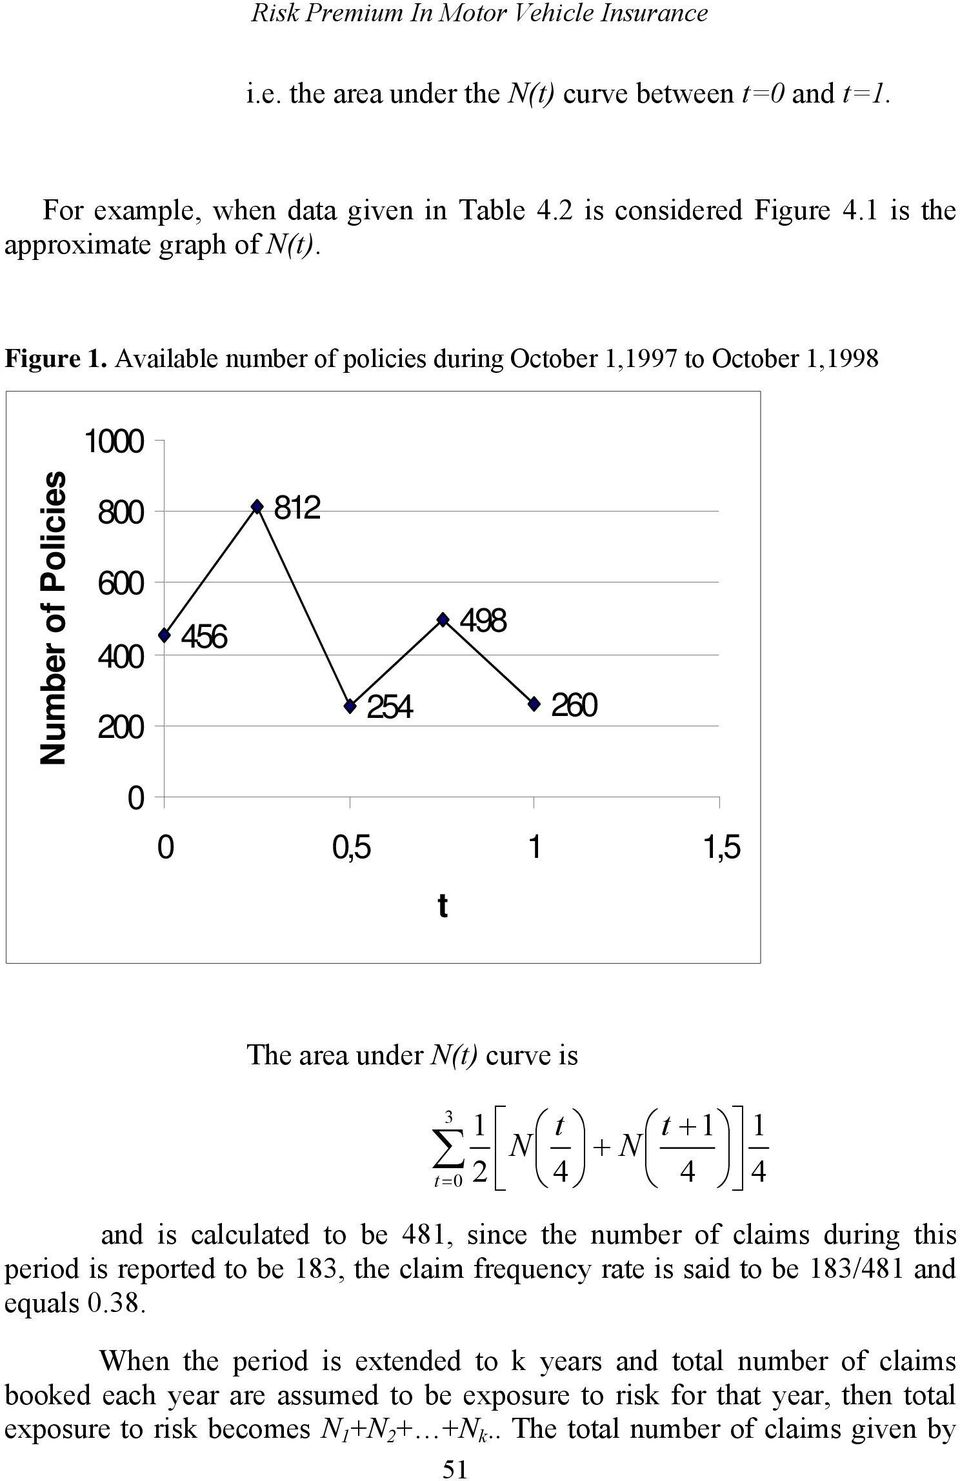 Avalable number of polces durng October 1,1997 to October 1,1998 1000 Number of Polces 800 600 400 00 0 81 456 498 54 60 0 0,5 1 1,5 t The area under N(t) curve s 3 t = 0 1 t t + 1 N + N 4